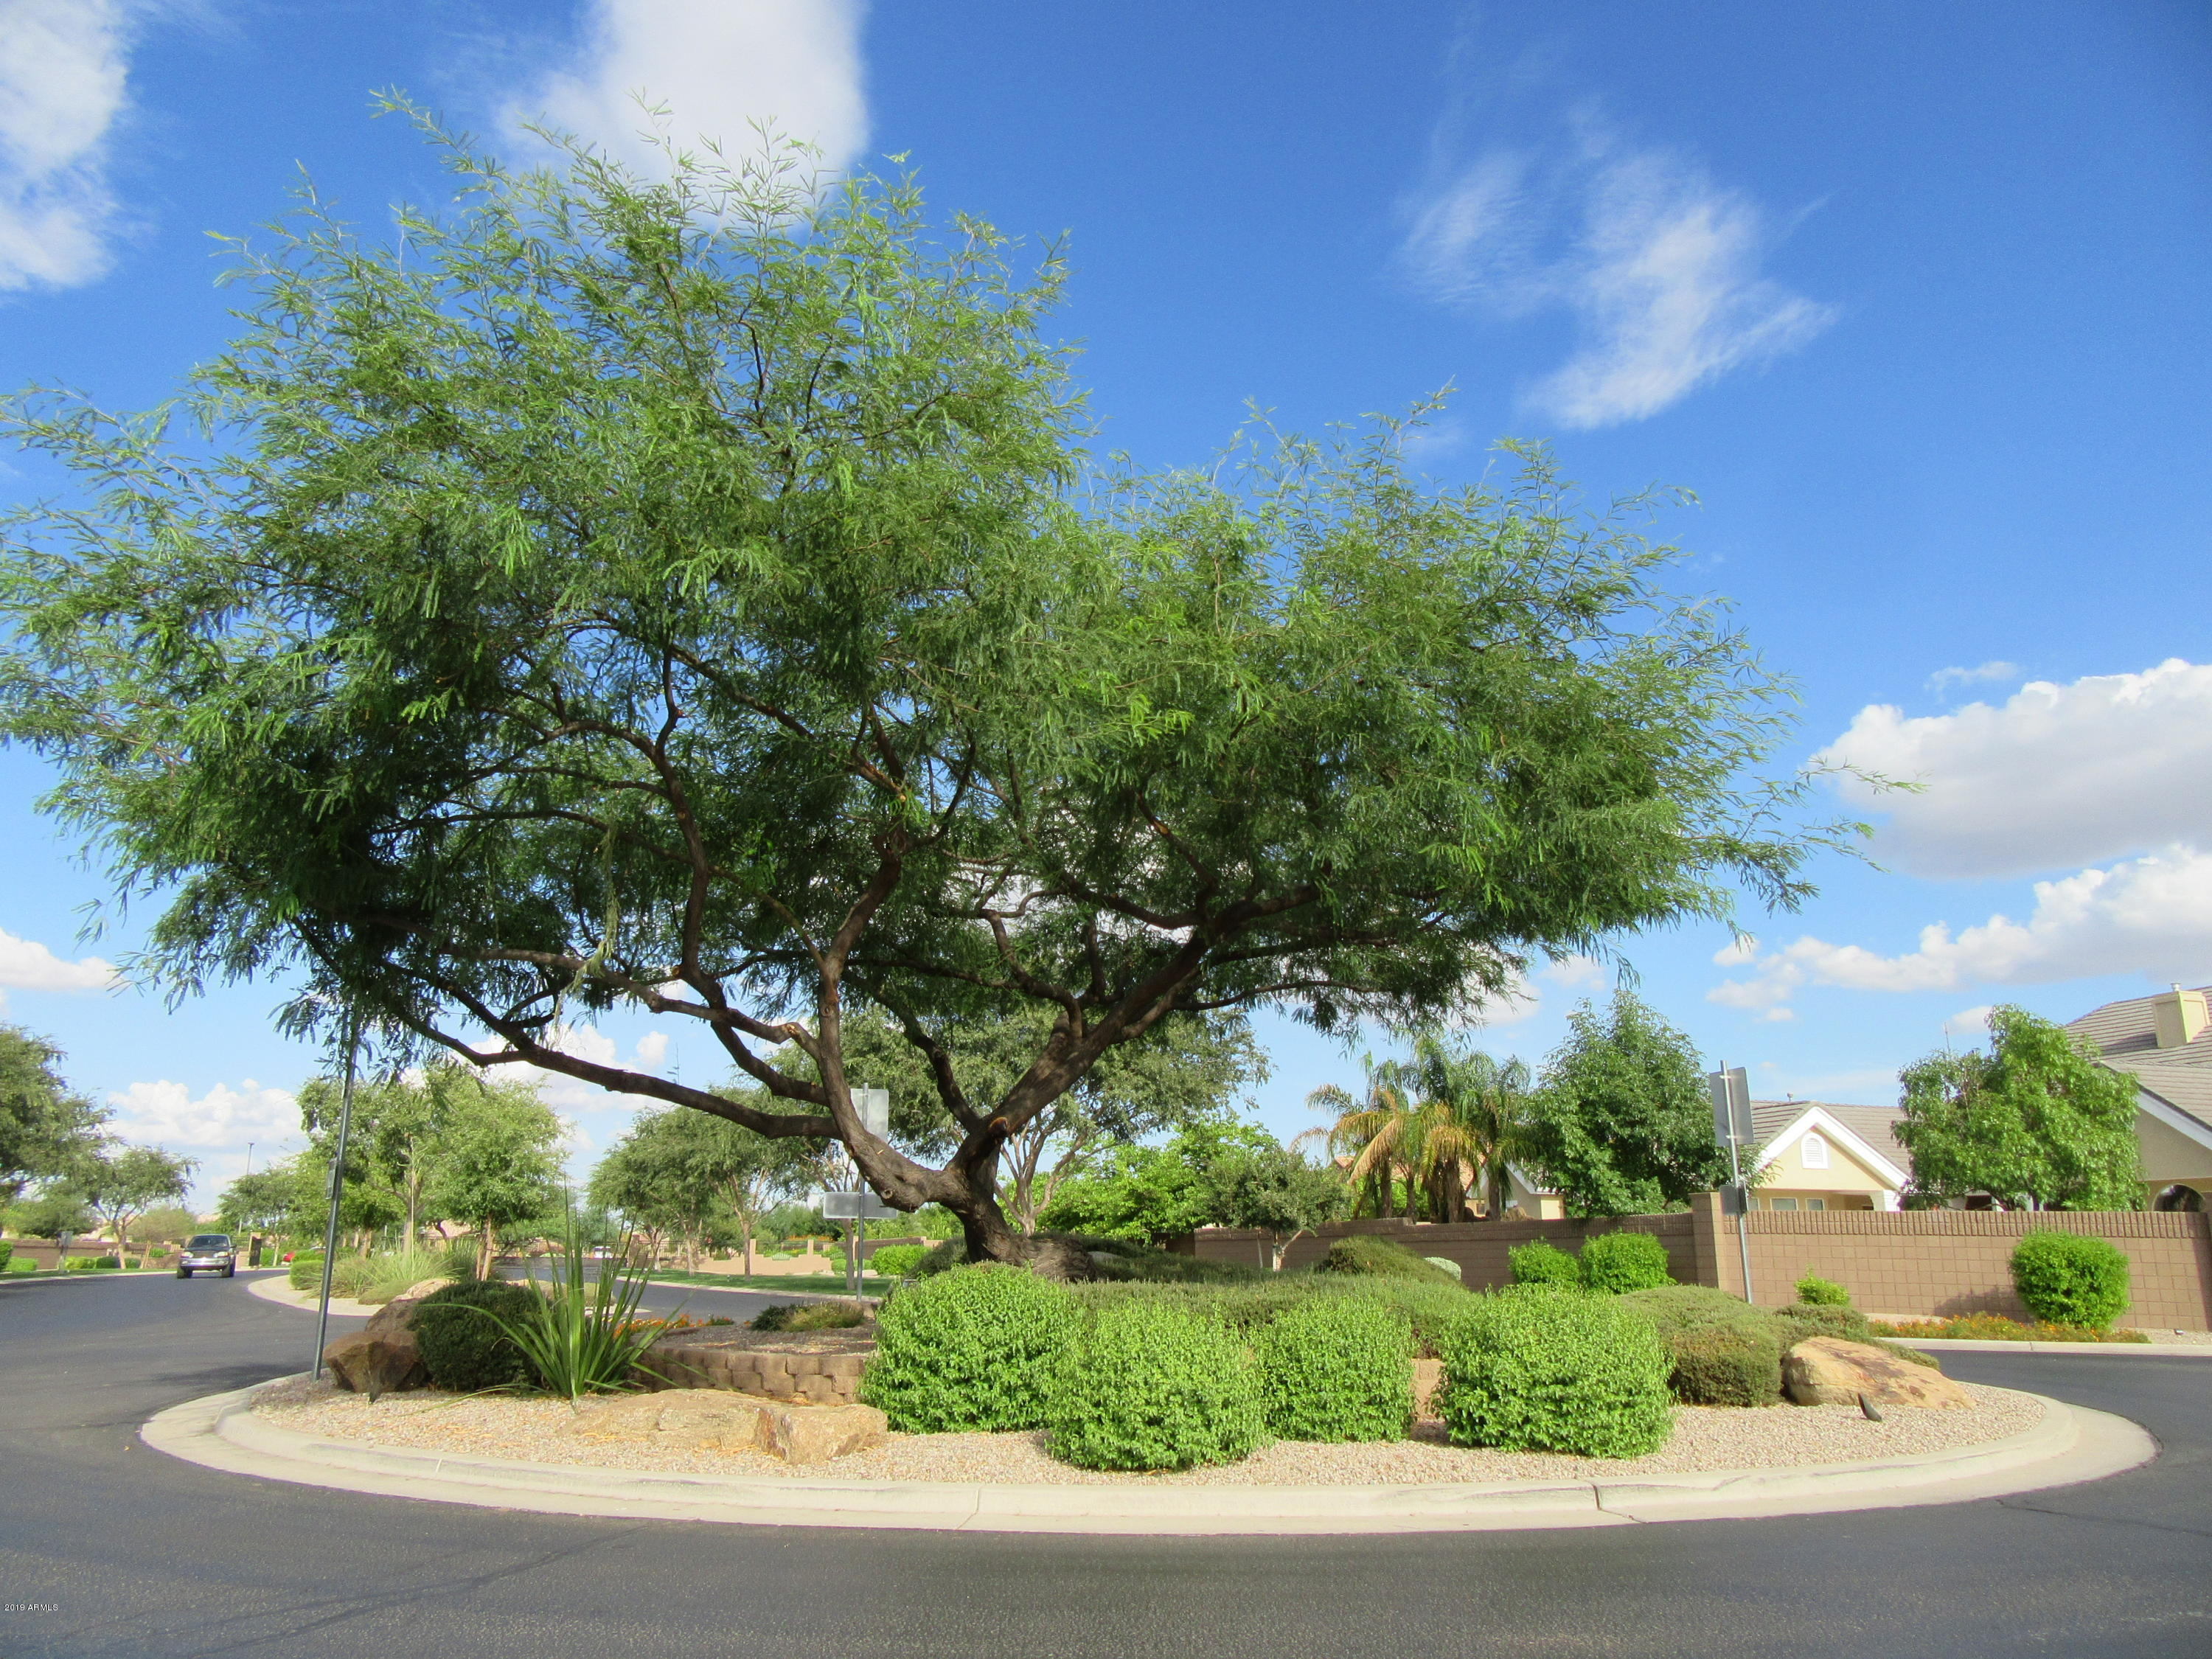 MLS 5896961 3100 E BONANZA Road, Gilbert, AZ 85297 85297